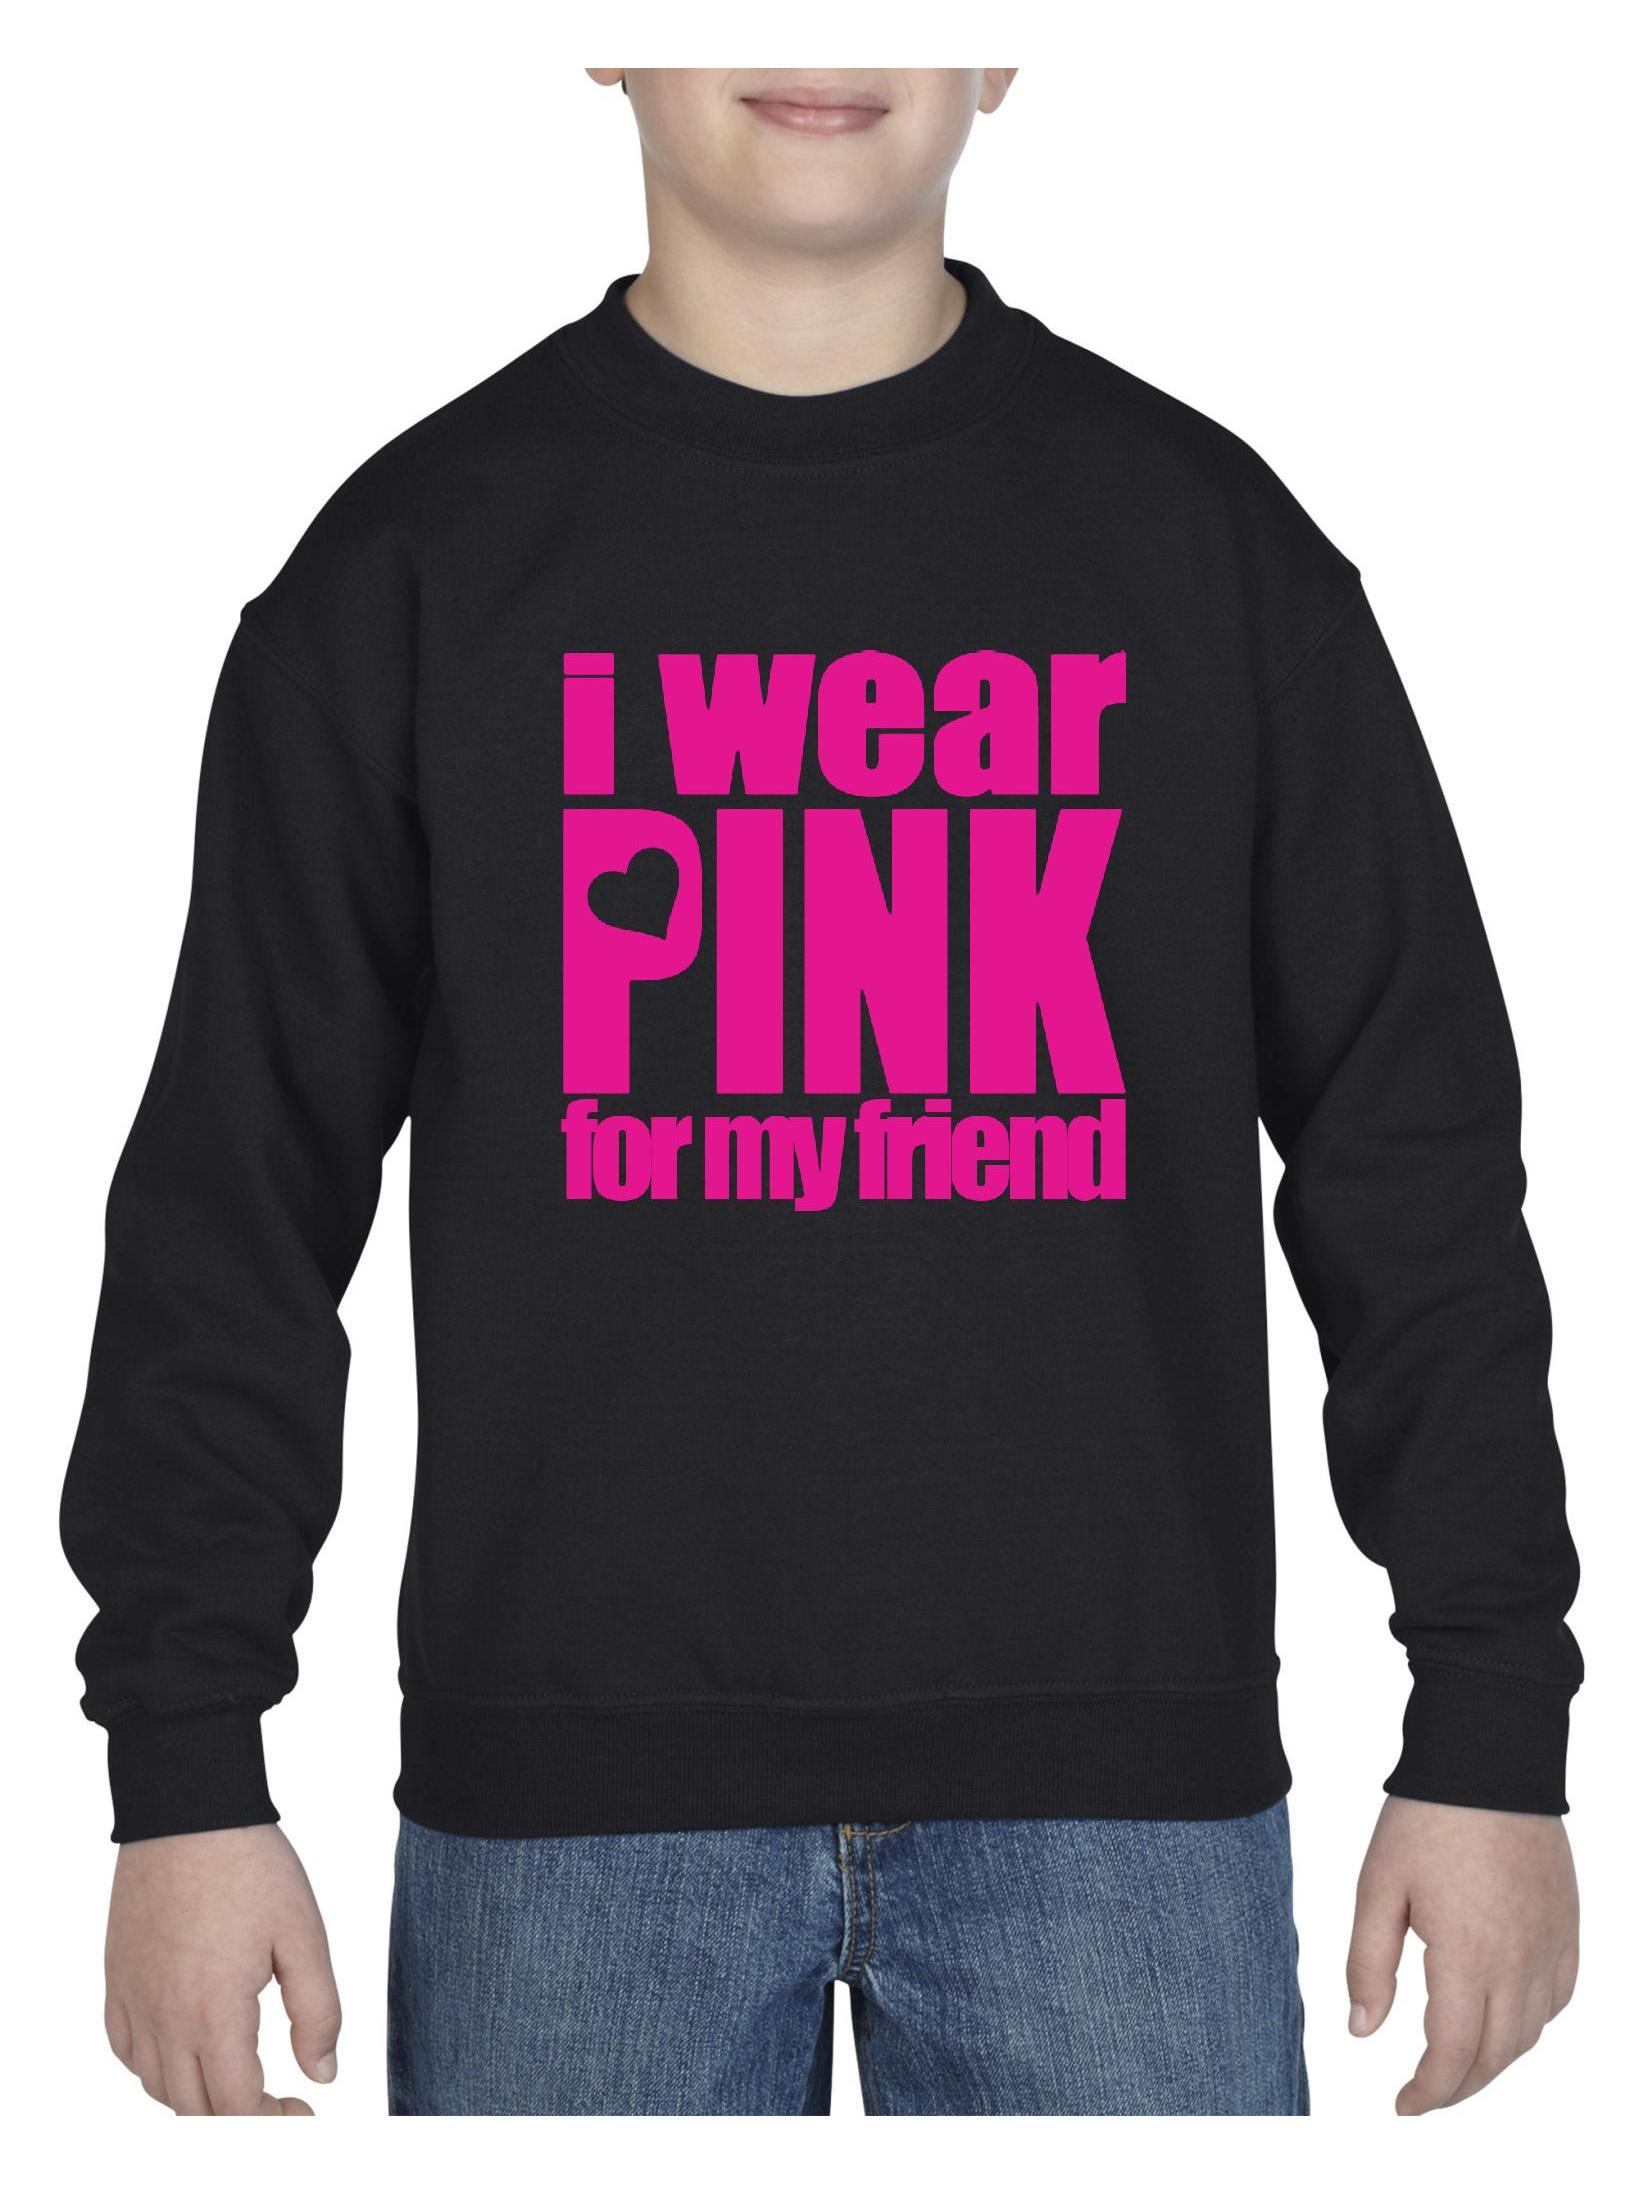 Cancer Awareness I Wear Pink For My Friend Youth Crewneck Sweatshirt